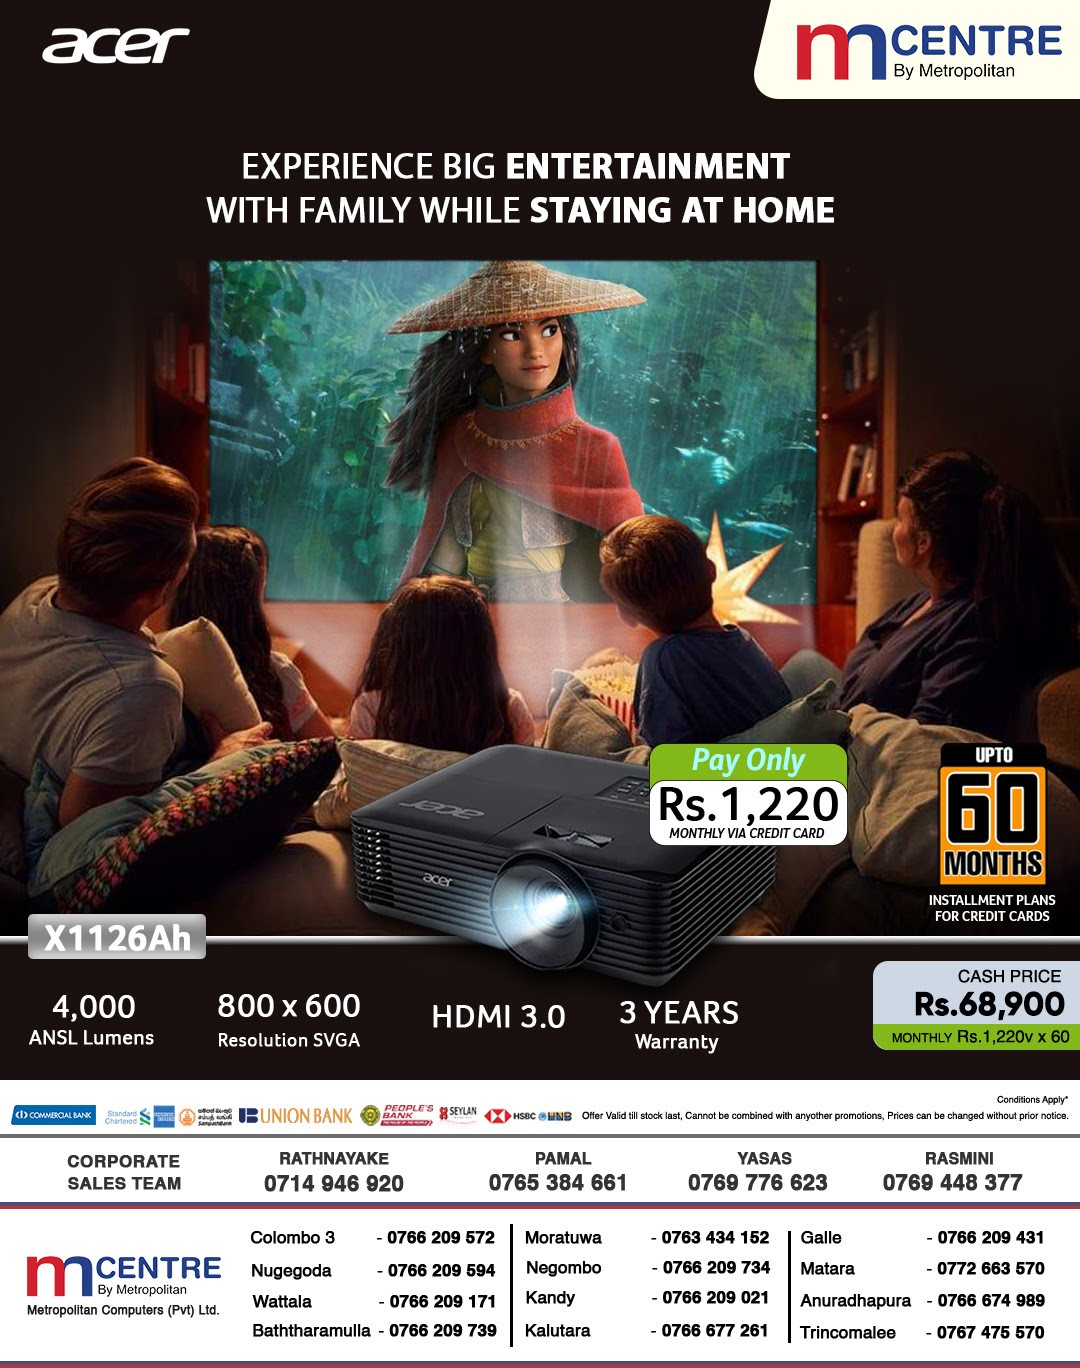 Experience Big Entertainment With Family While Staying At Home